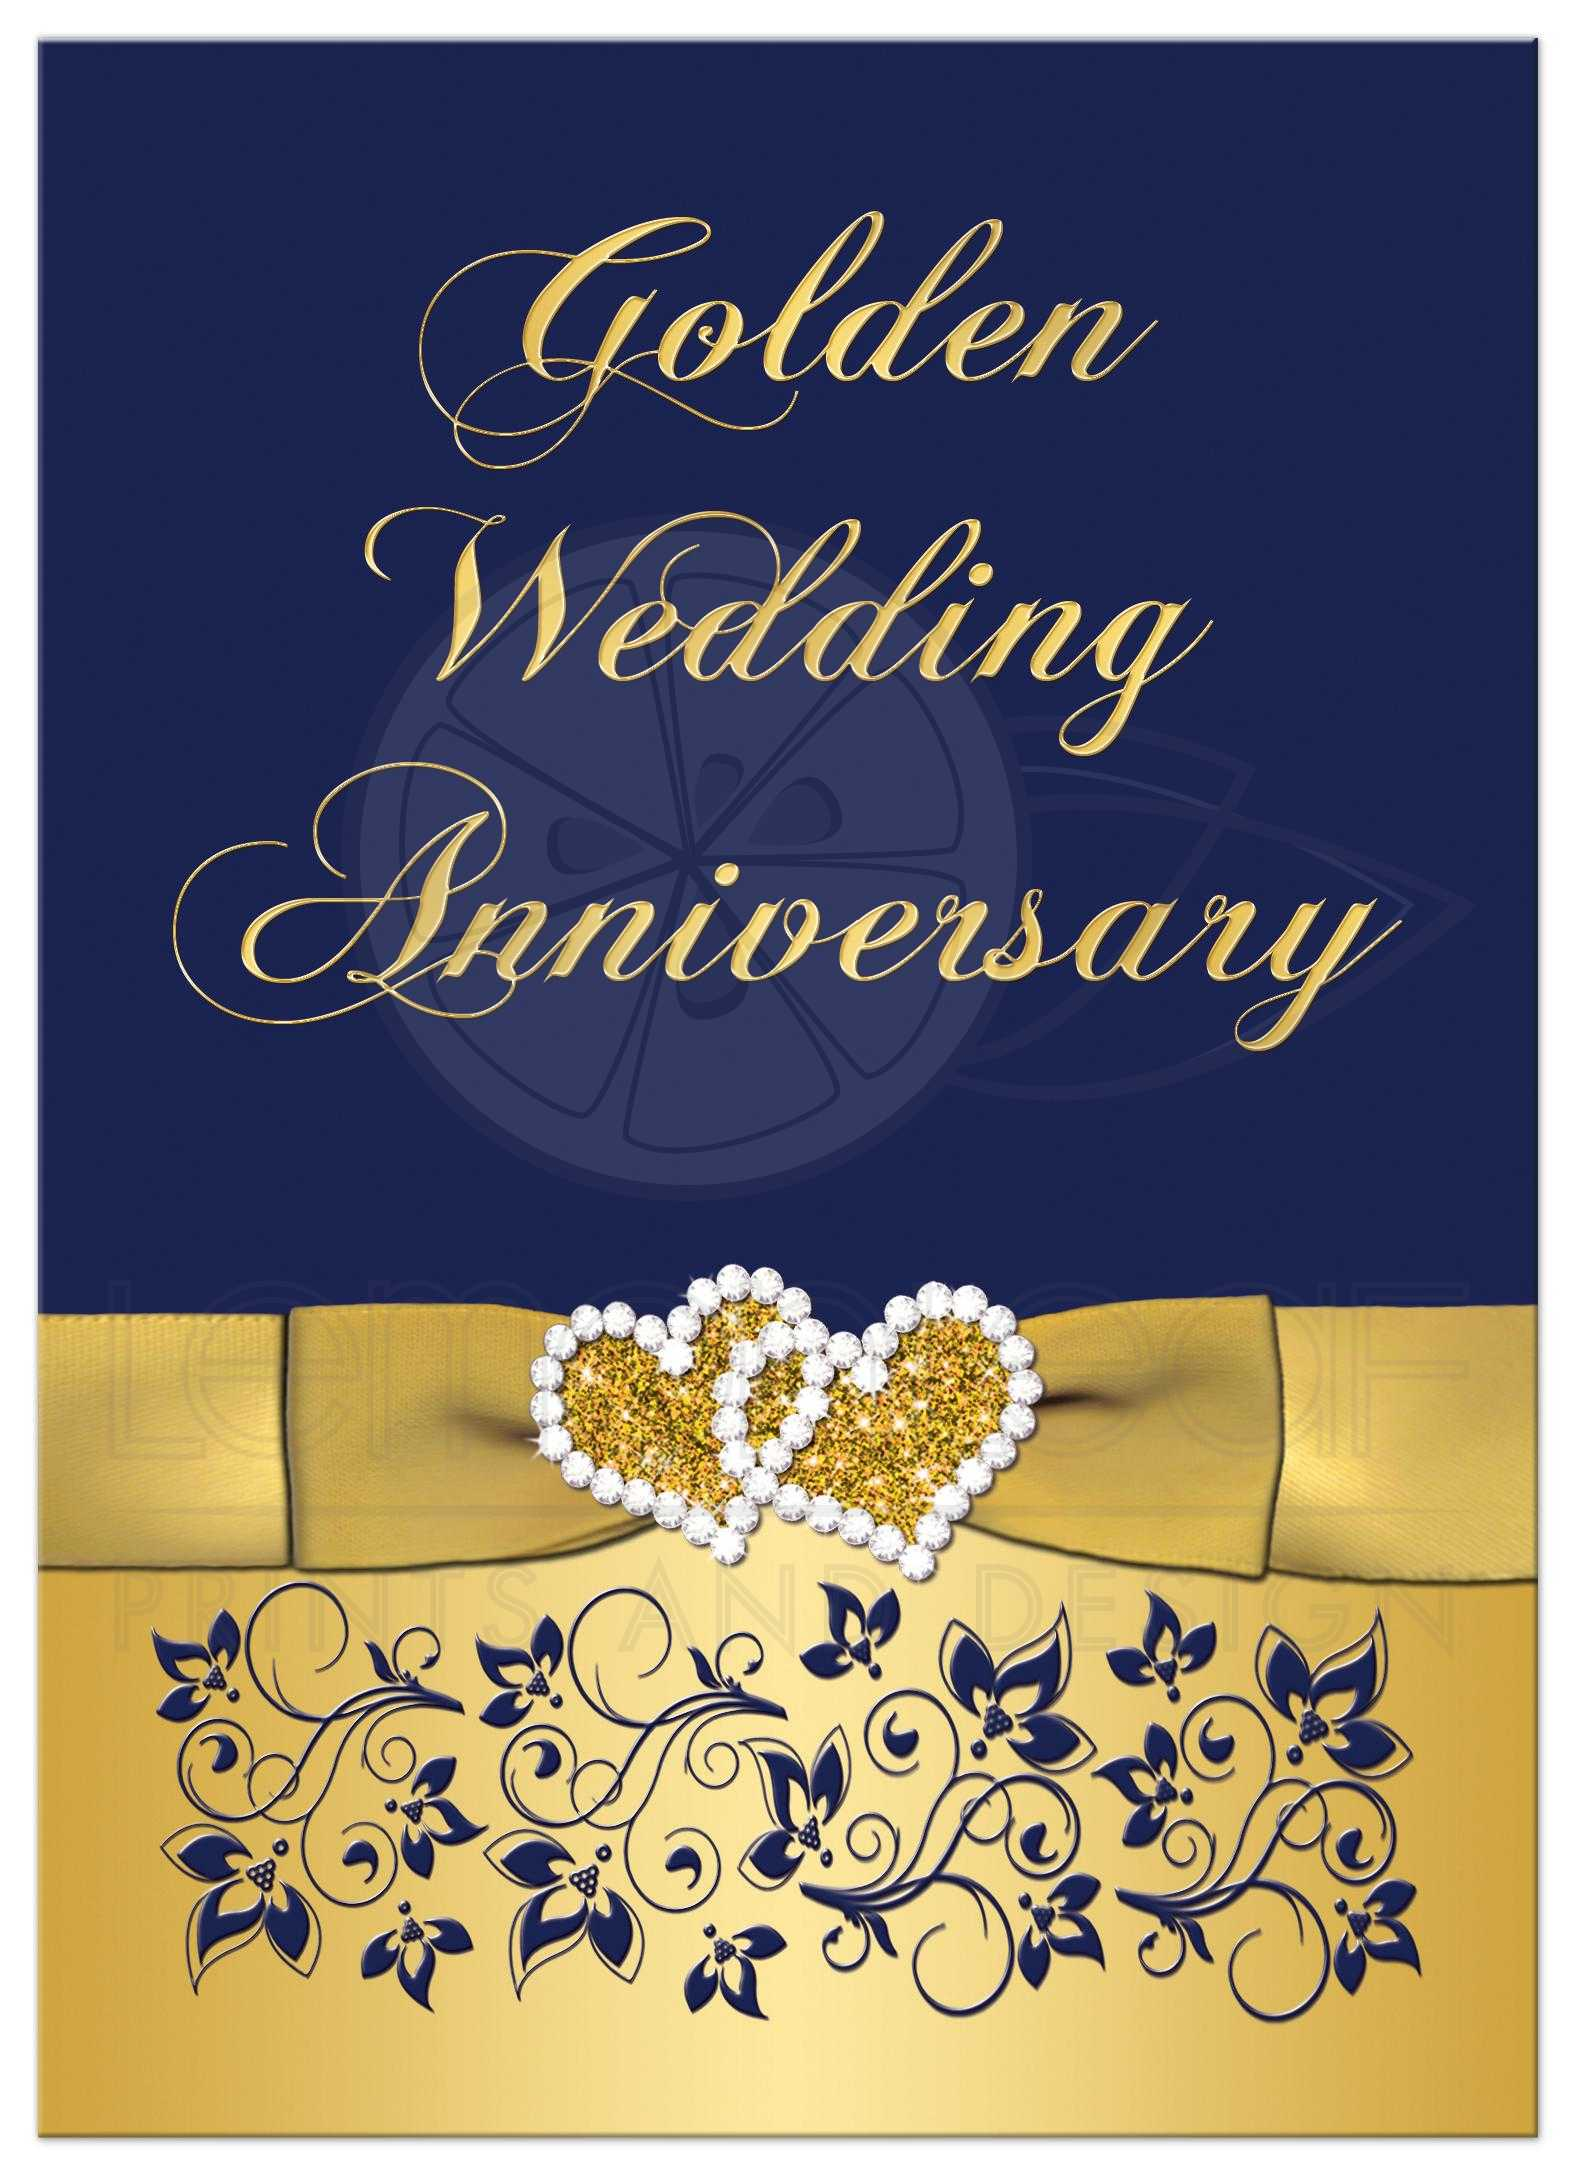 50th wedding anniversary invitation in navy and gold floral with joined hearts - 50th Wedding Anniversary Invitations